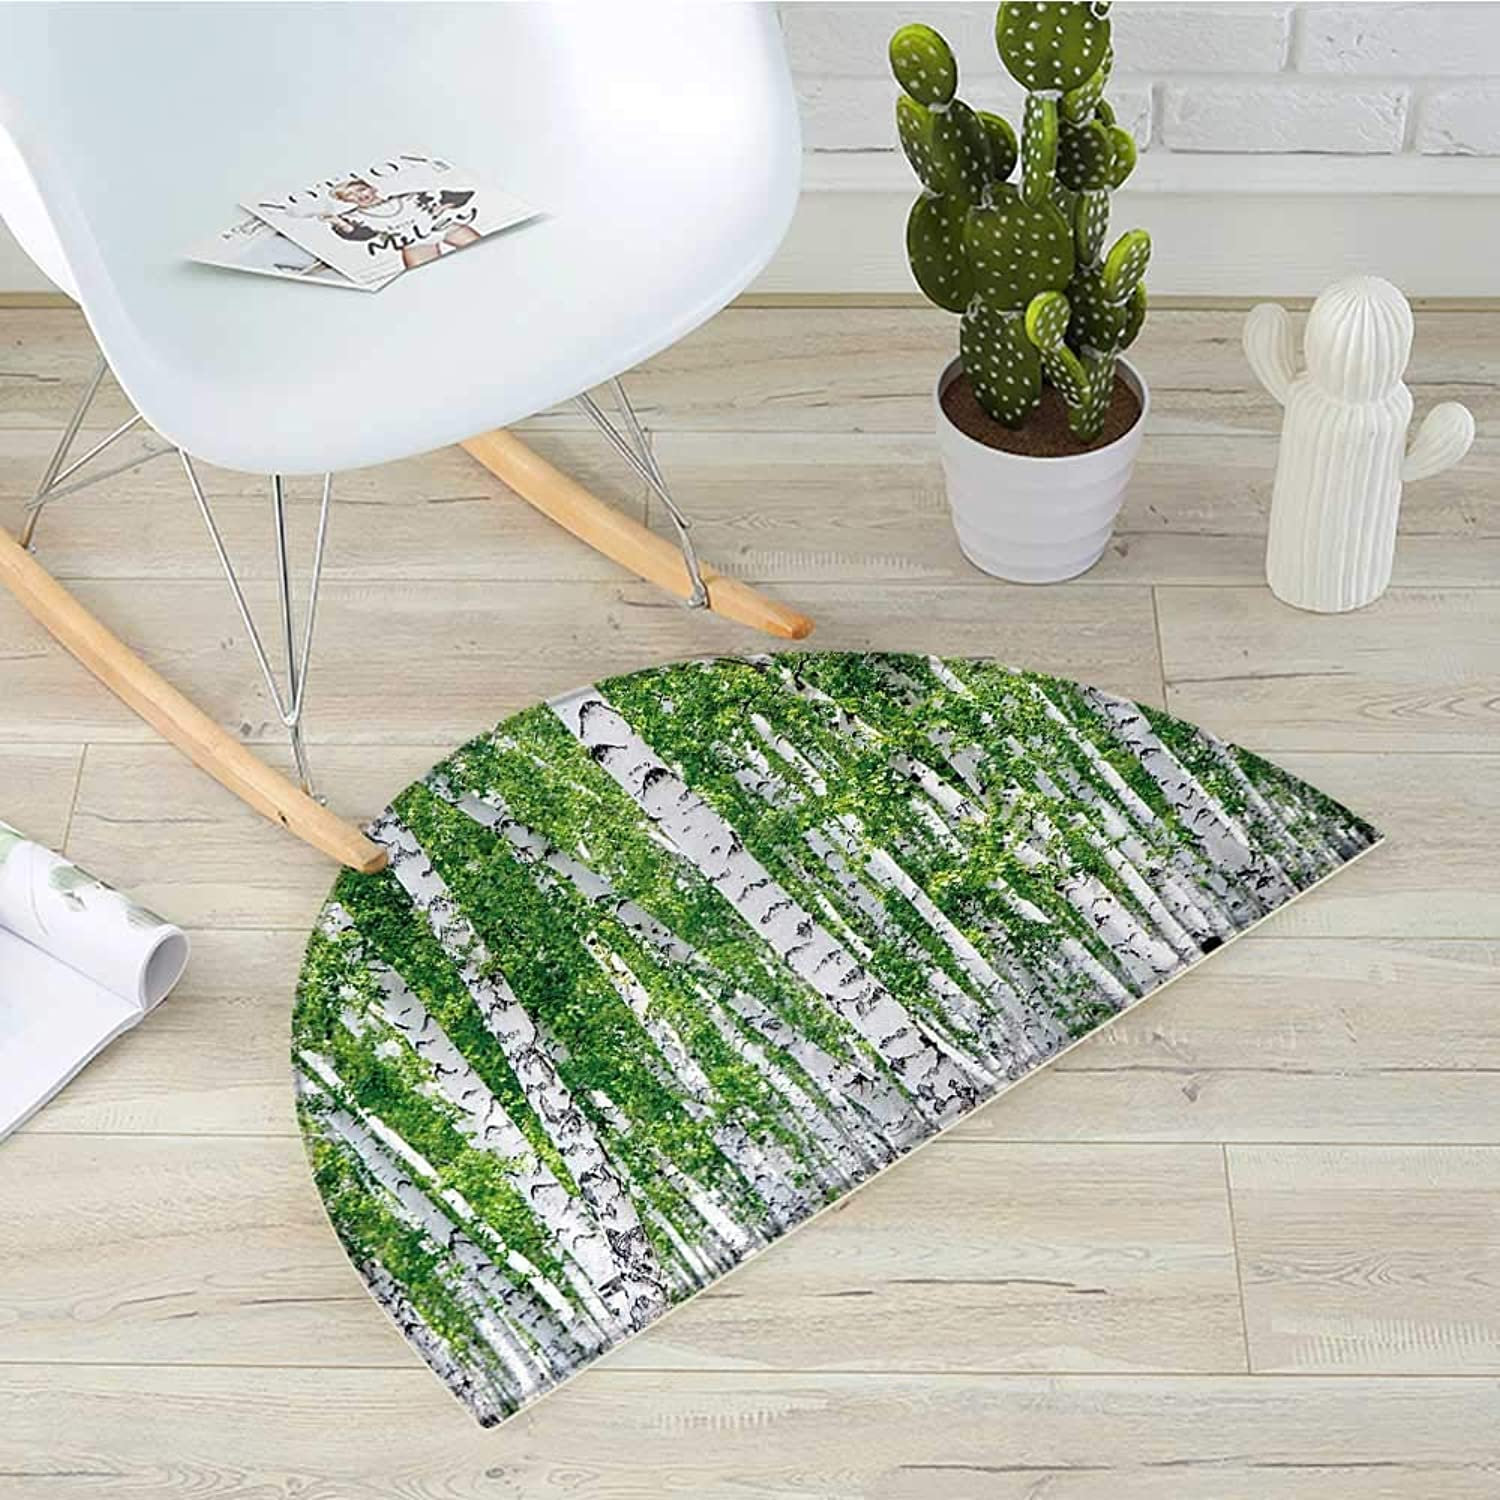 Birch Tree Semicircular CushionFresh Green Leaves Summer Forest Rural Landscape Lush Environmental Image Entry Door Mat H 39.3  xD 59  Green White Black